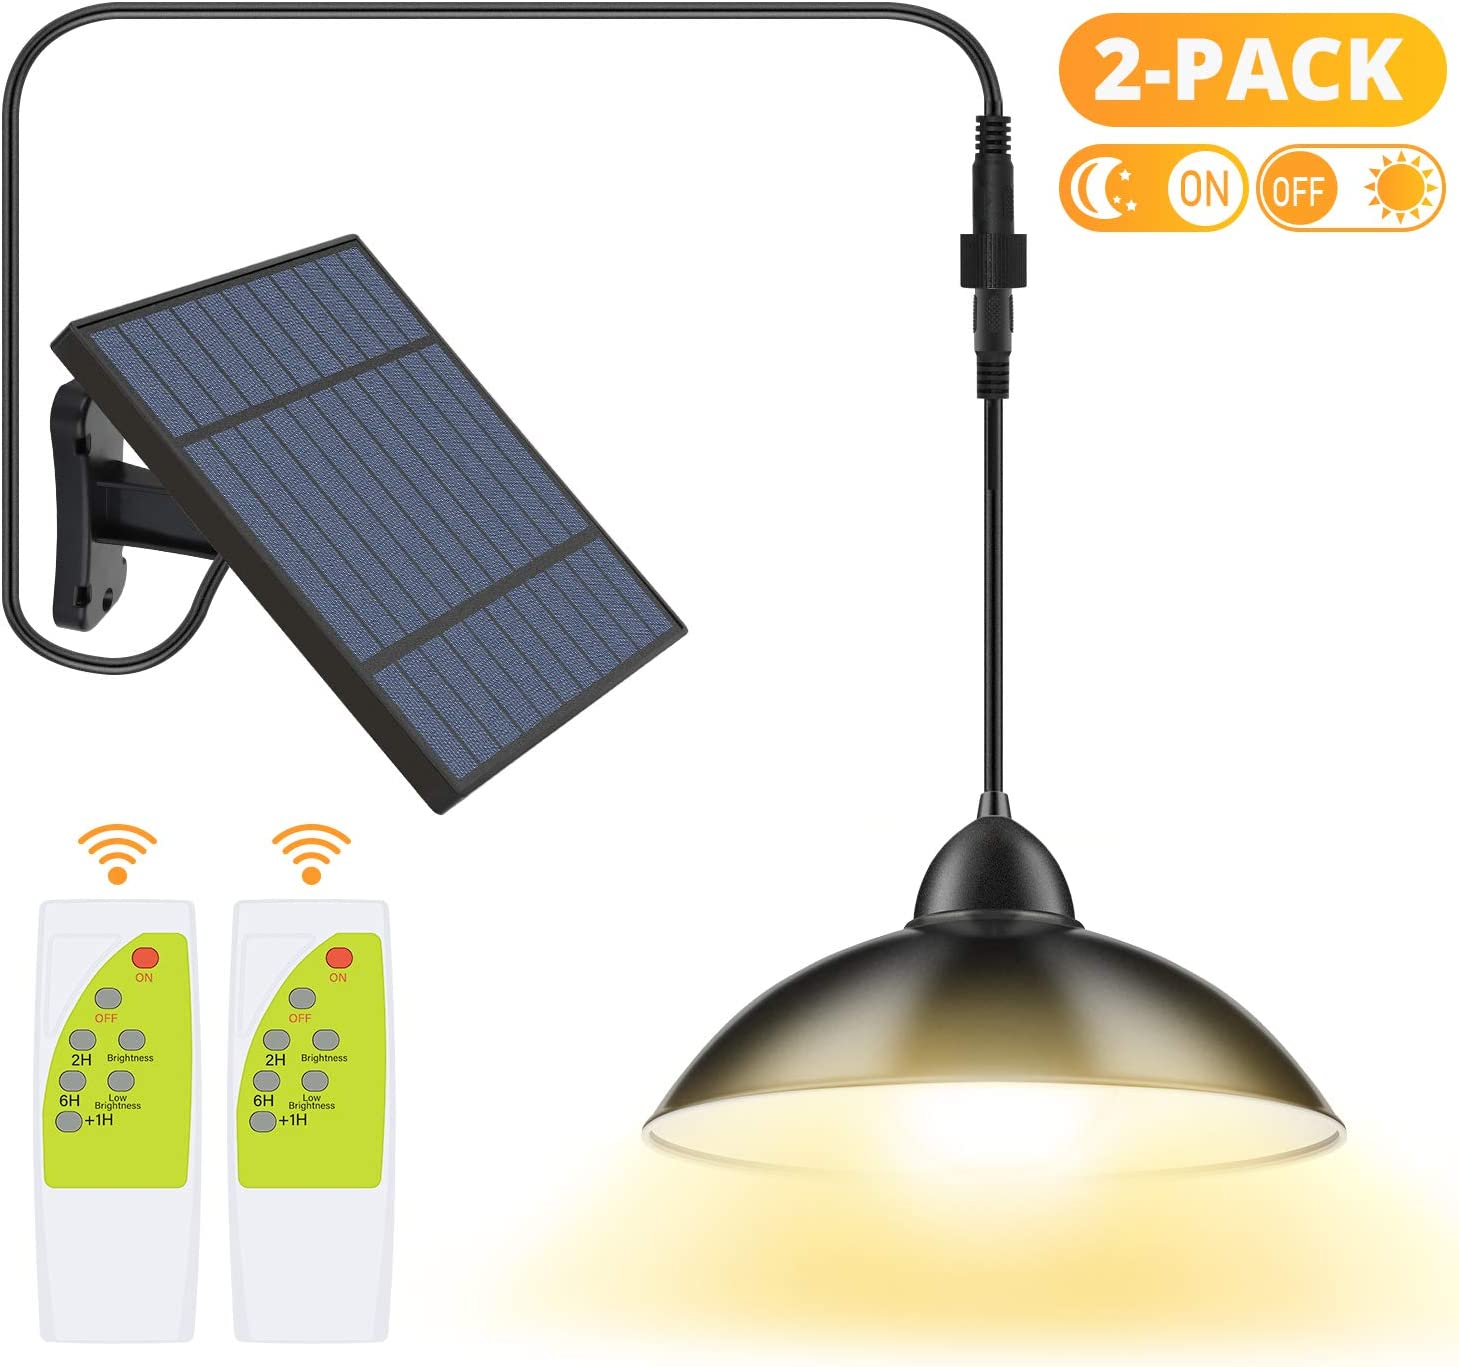 2 Pack Solar Lights Outdoor, Cord LED Solar Shed Lights 32.8FT, Remote Control Pendant Lamp with Adjustable Solar Panel, IP65 Waterproof for Indoor Home Decor Outdoor Garden Patio Yard, Warm White